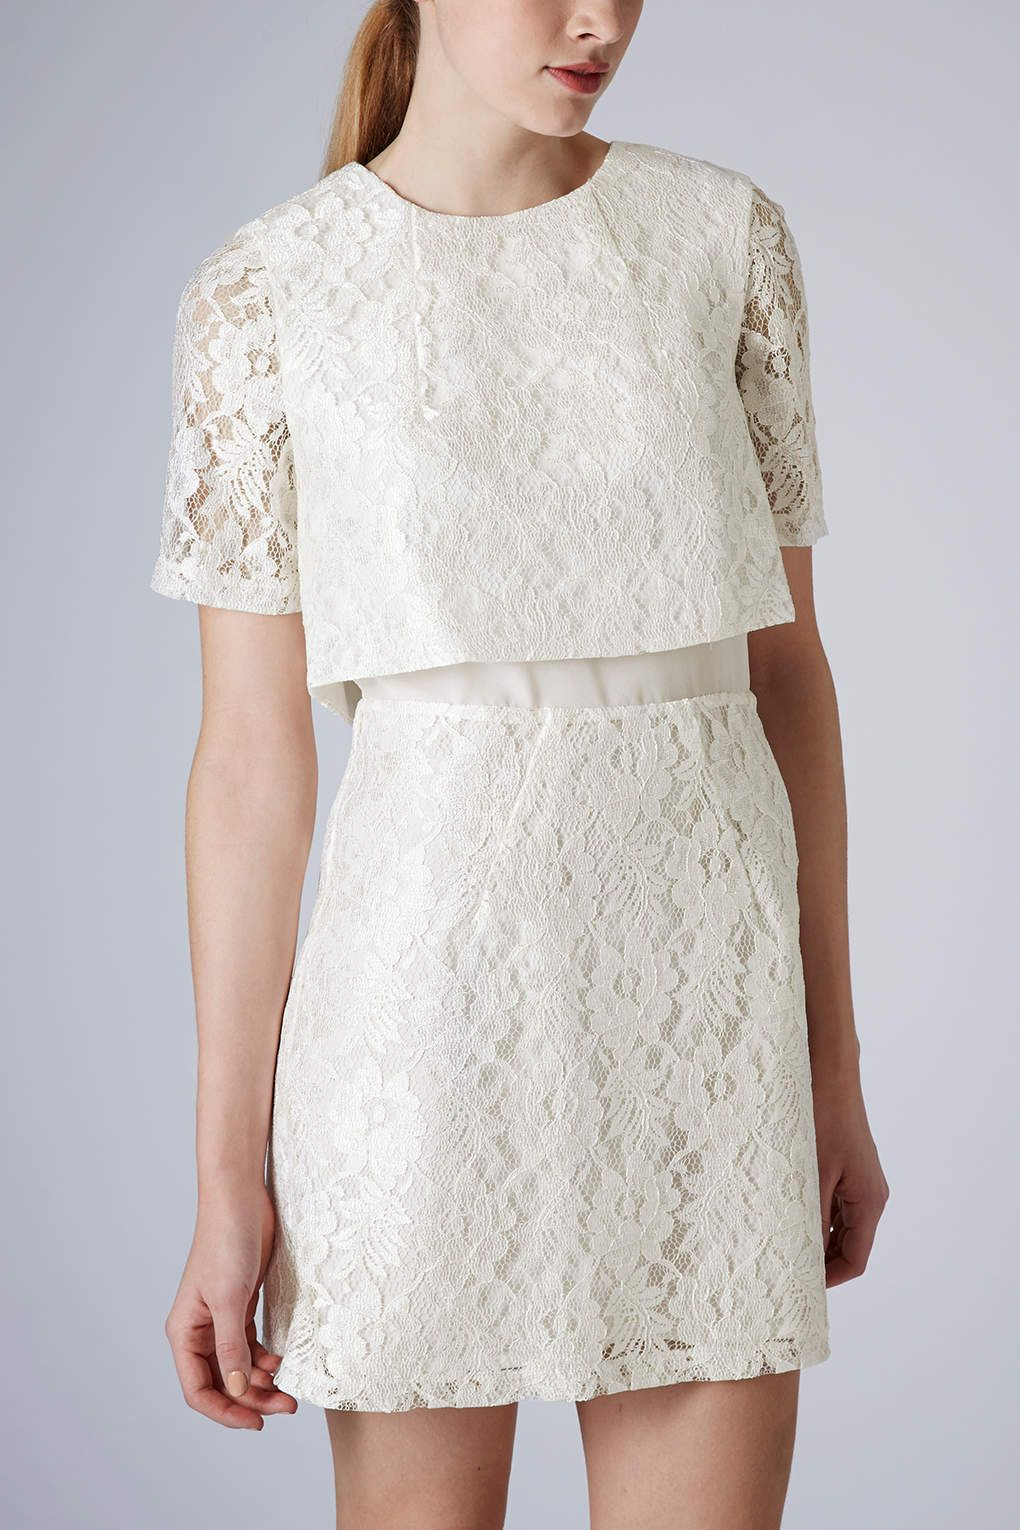 60s Lace Shift Dress - New In This Week - New In - Topshop